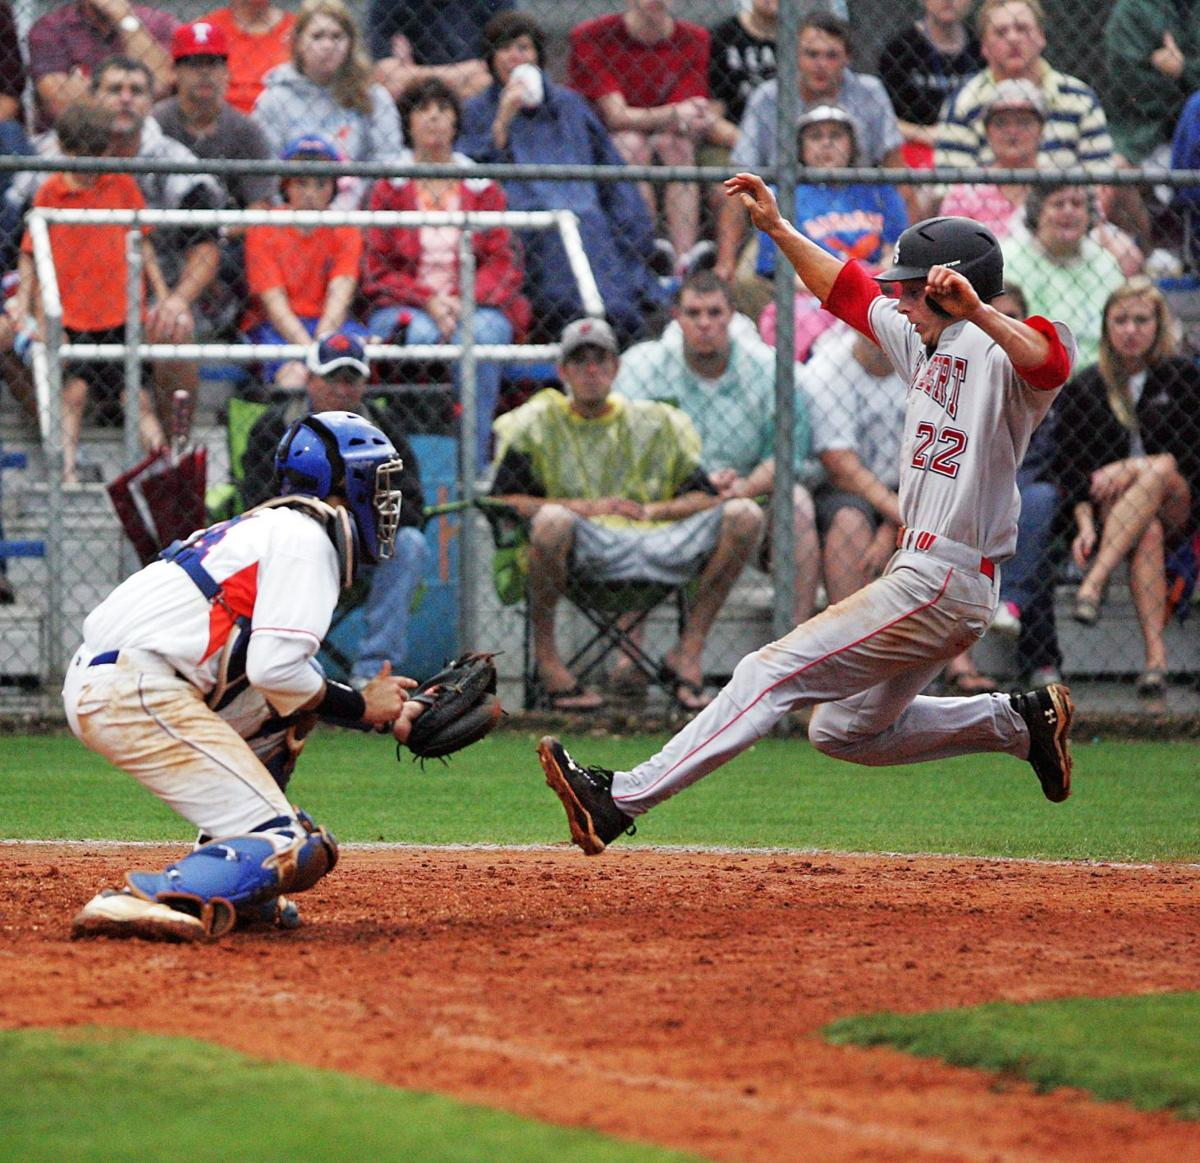 Gilbert plays longball to defeat Hanahan 8-3 in Game 1 of Class AA State Championship Series